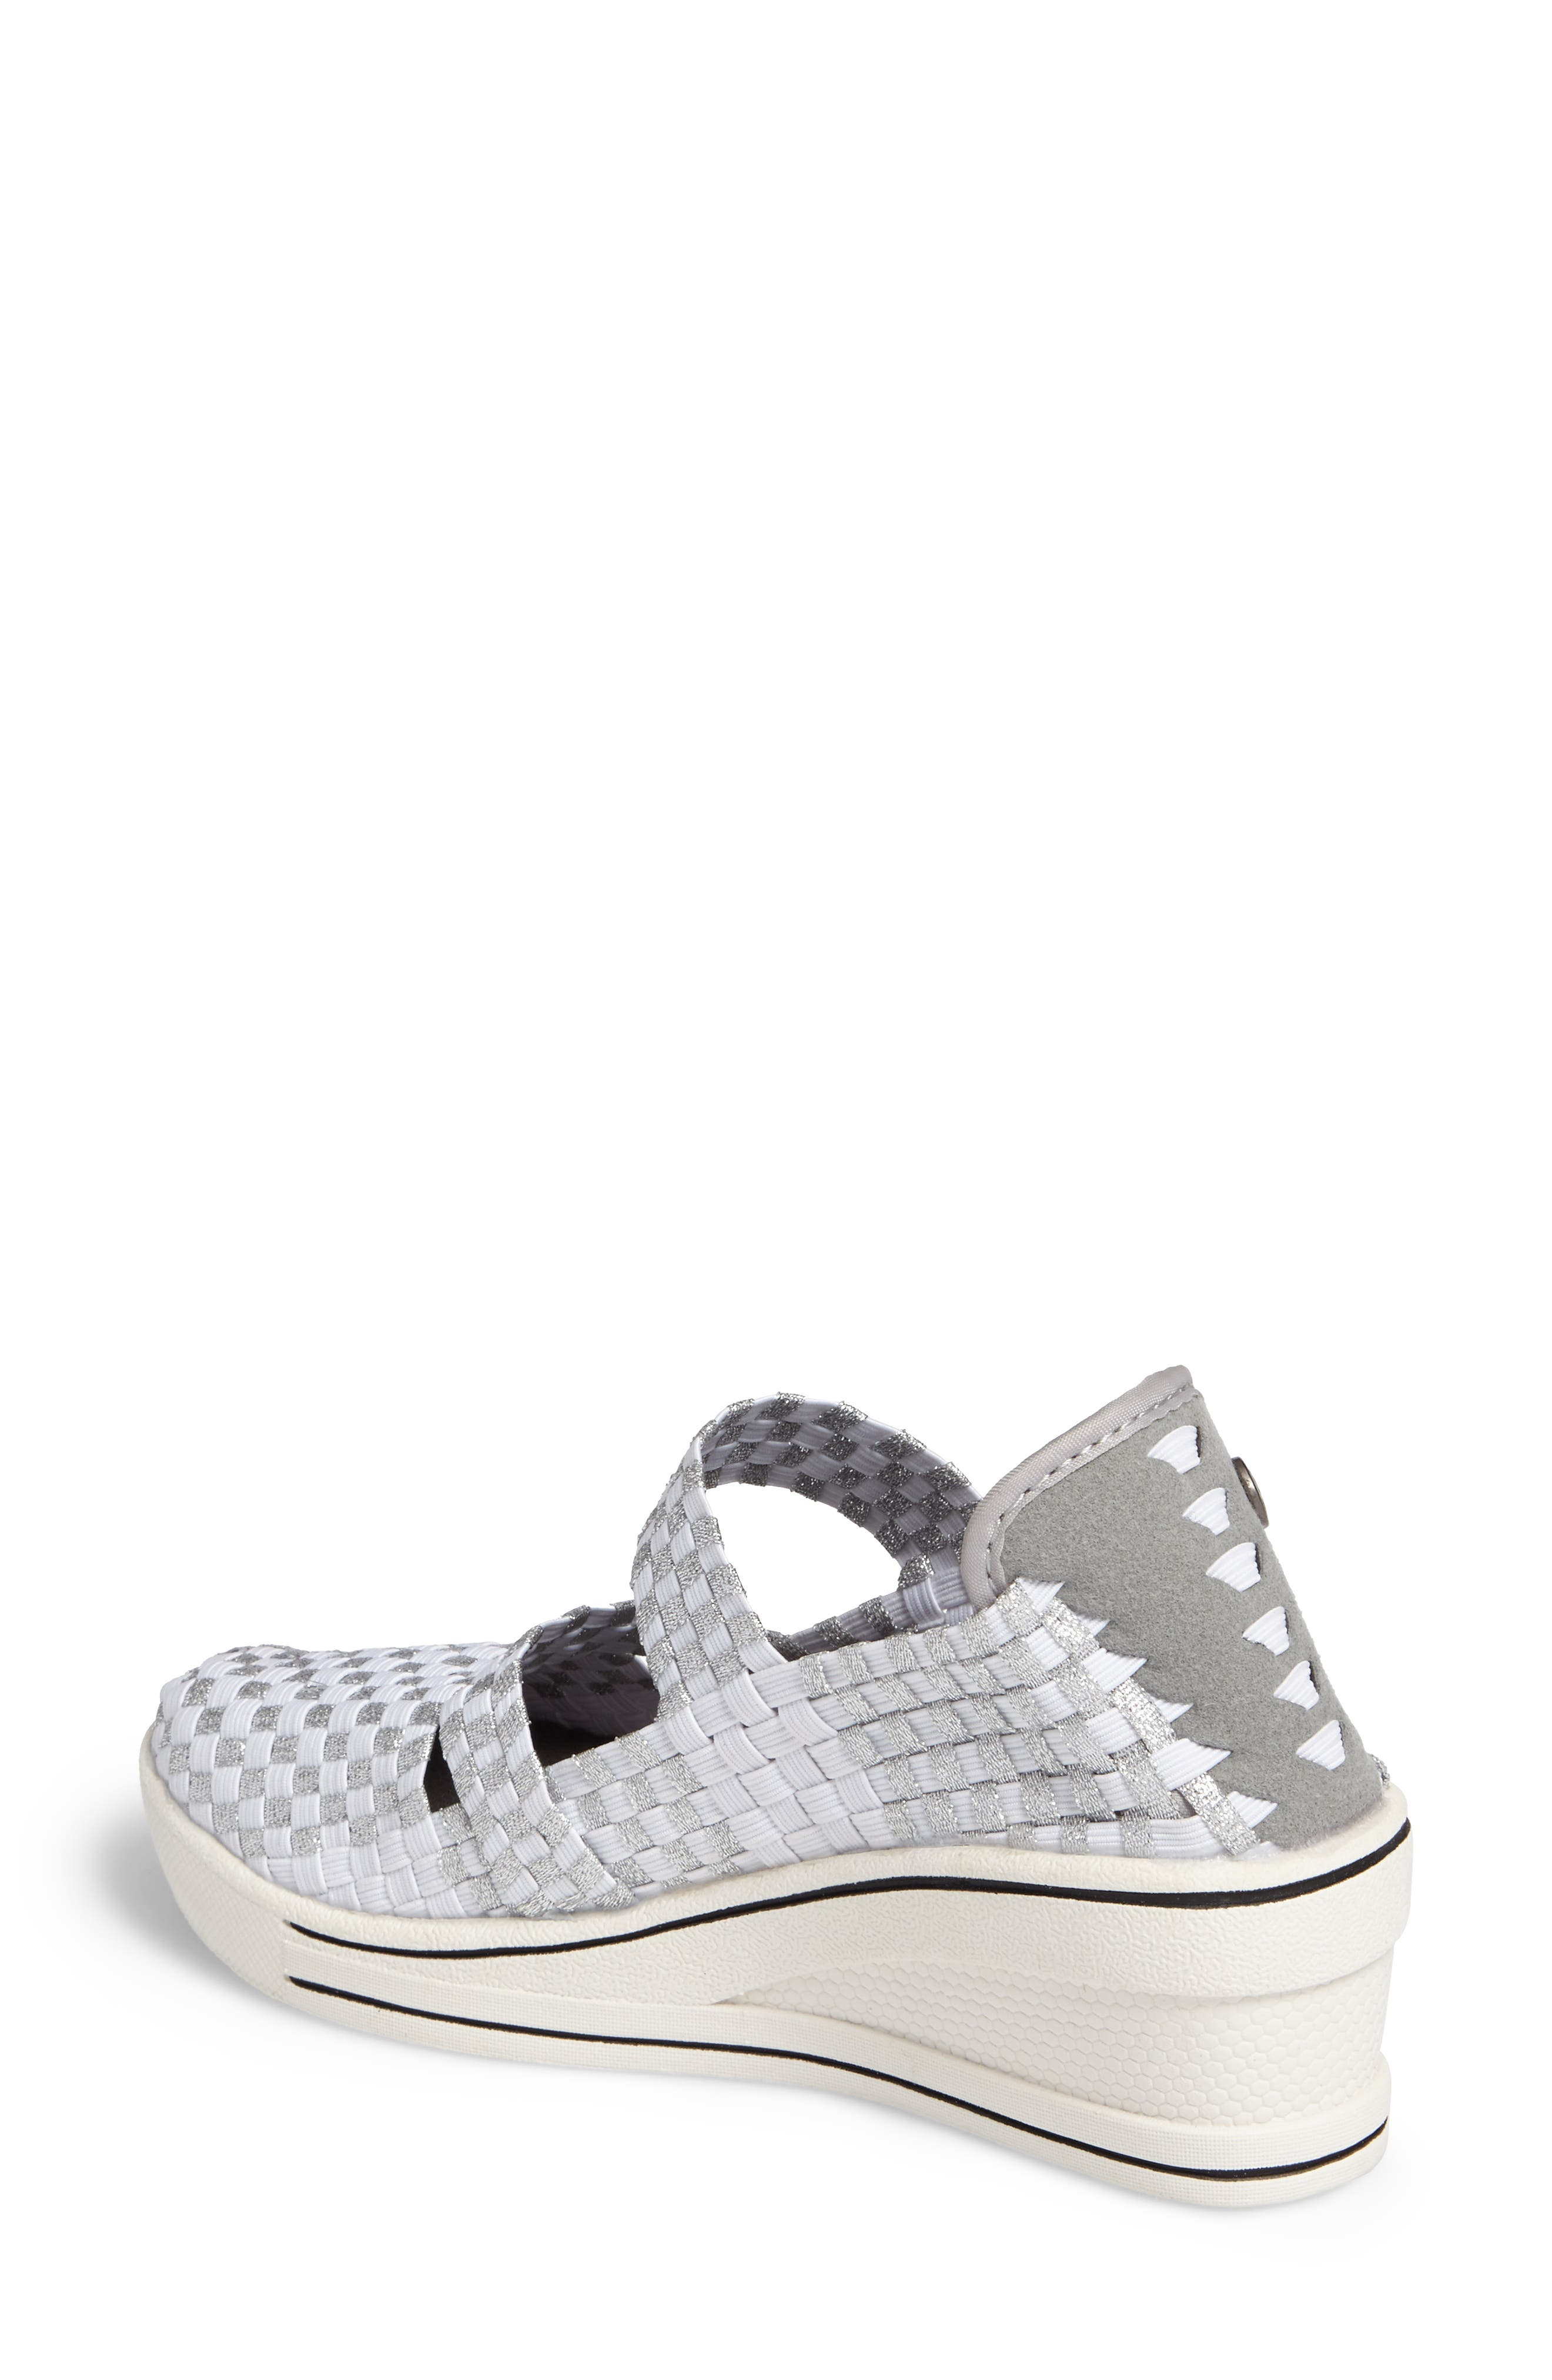 Frontier Woven Mary Jane Wedge,                             Alternate thumbnail 2, color,                             Metallic White/ Silver Fabric